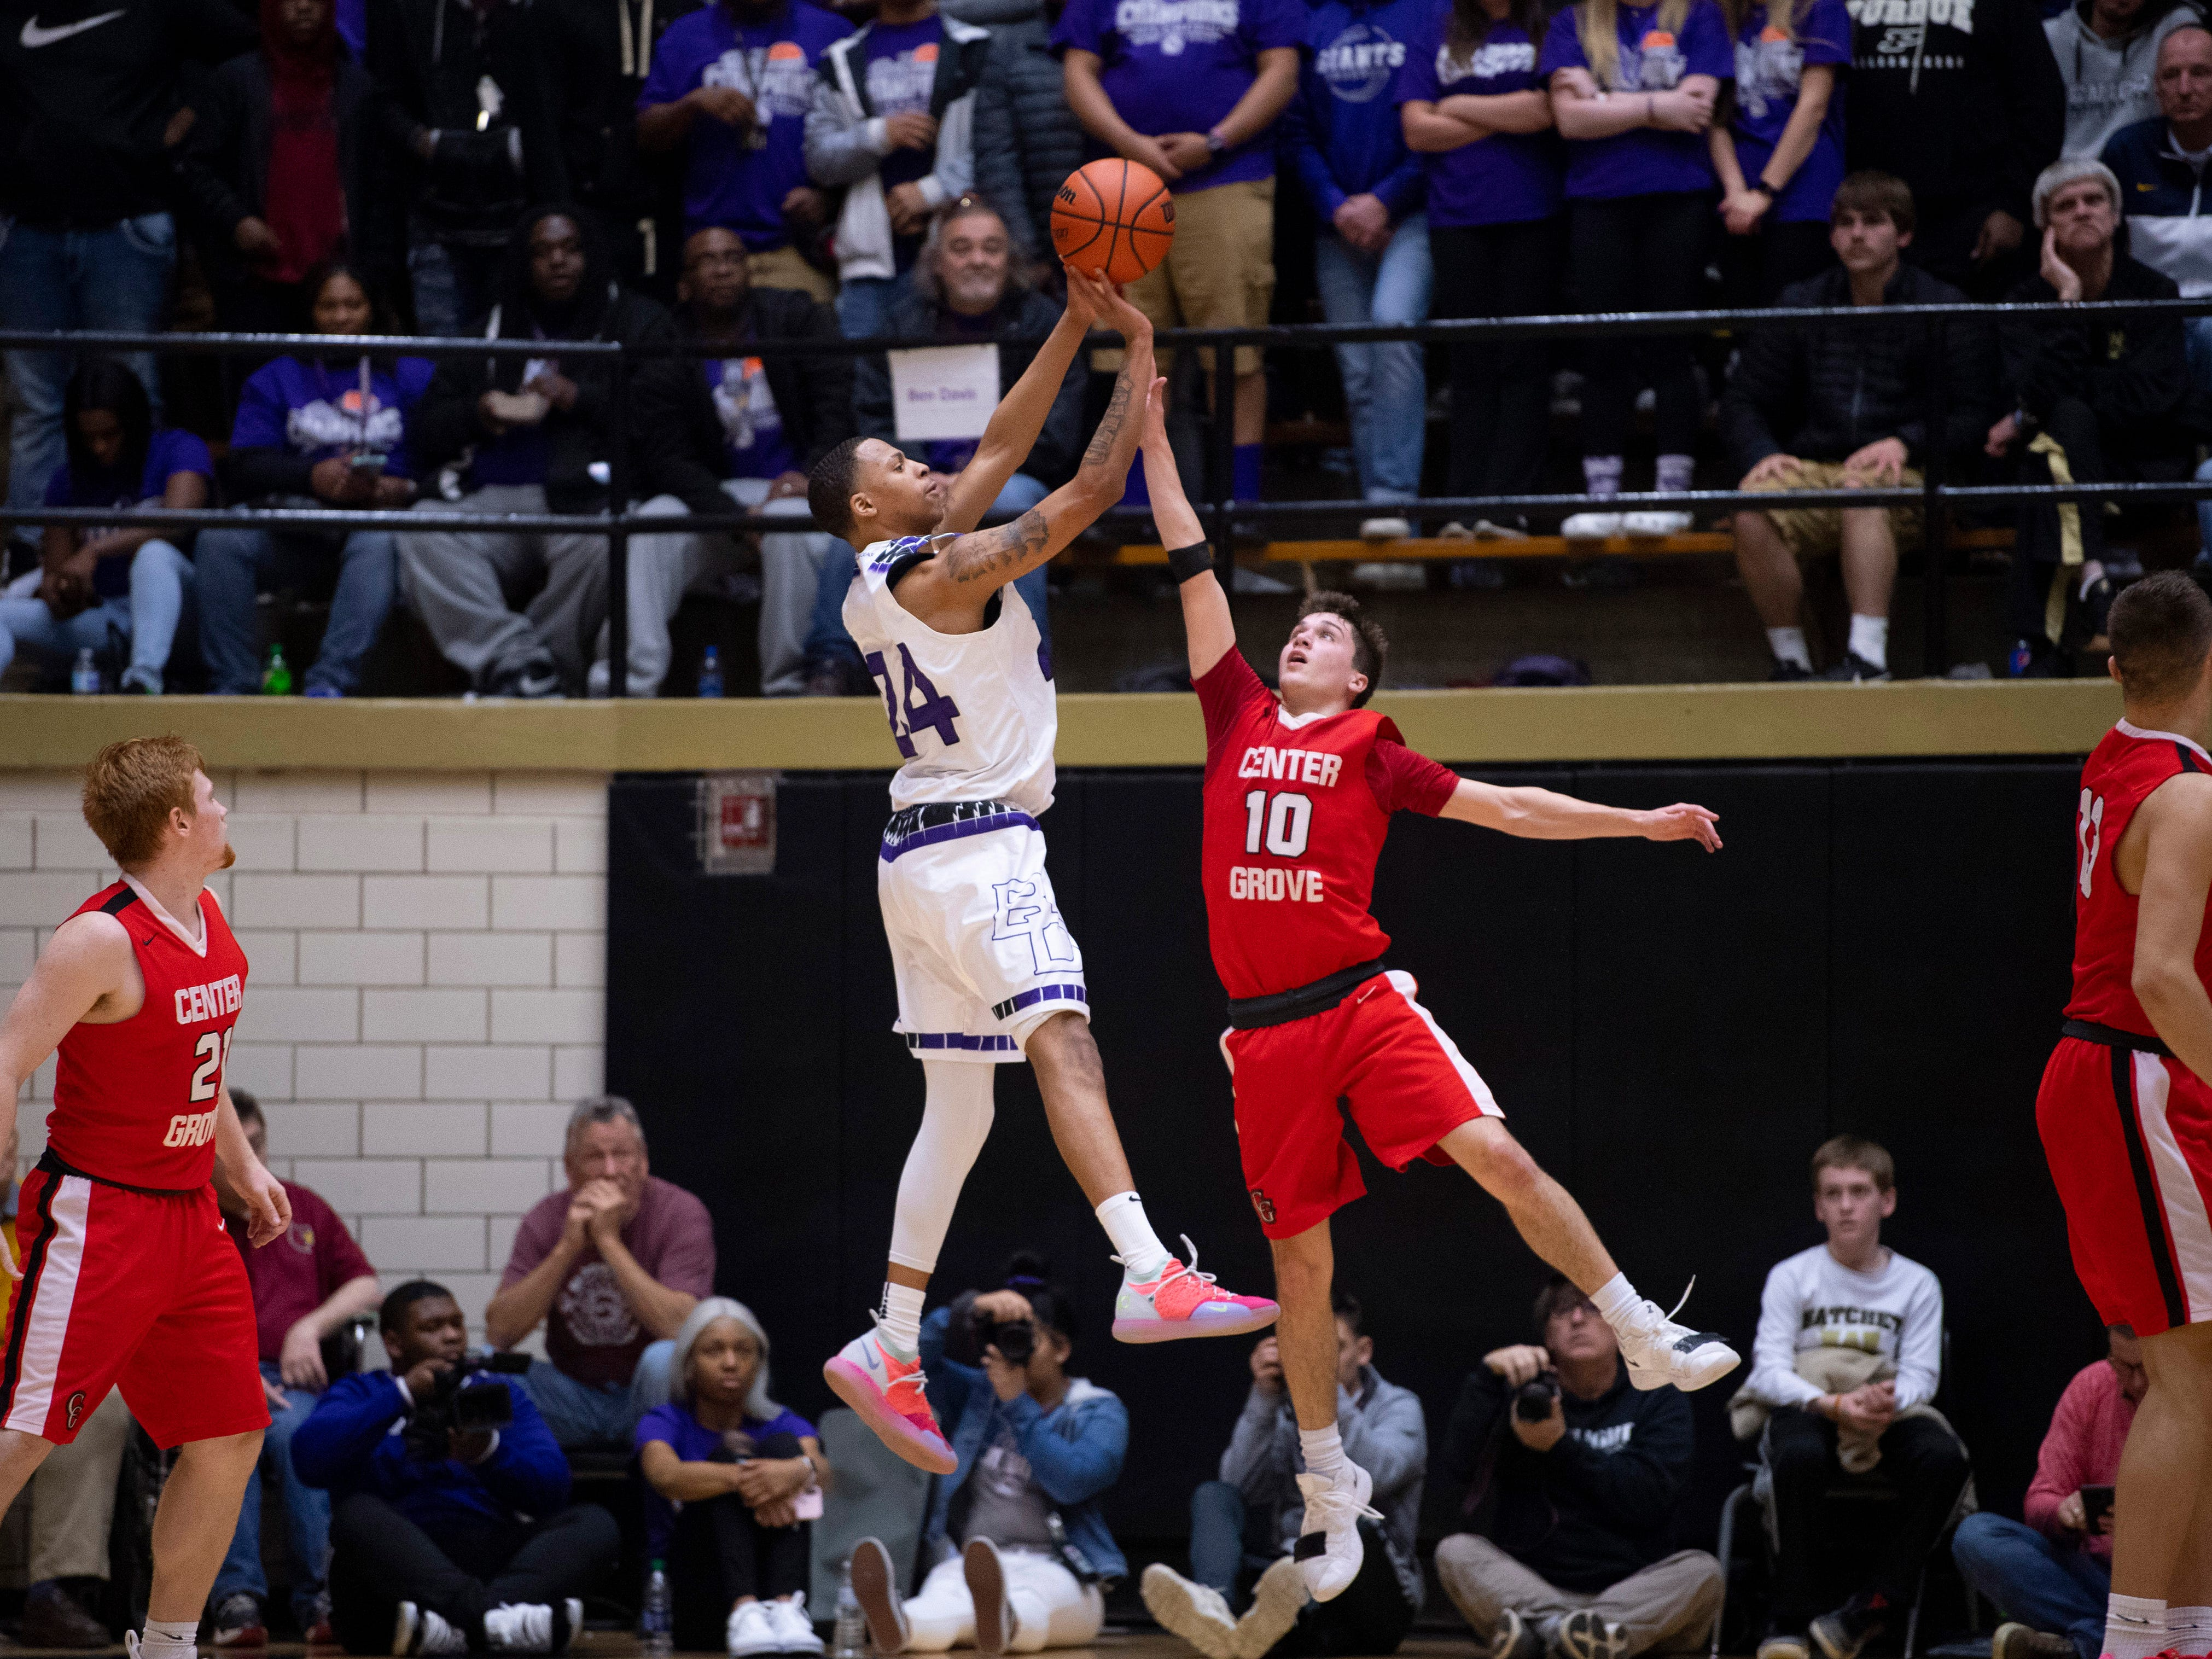 Ben Davis's Jalen Windham (24) puts up a shot over Center Grove's Spencer Piercefield (10) during the 4A Boys Indiana Semi-State Basketball Tournament at the Hatchet House in Washington, Ind., Saturday afternoon.